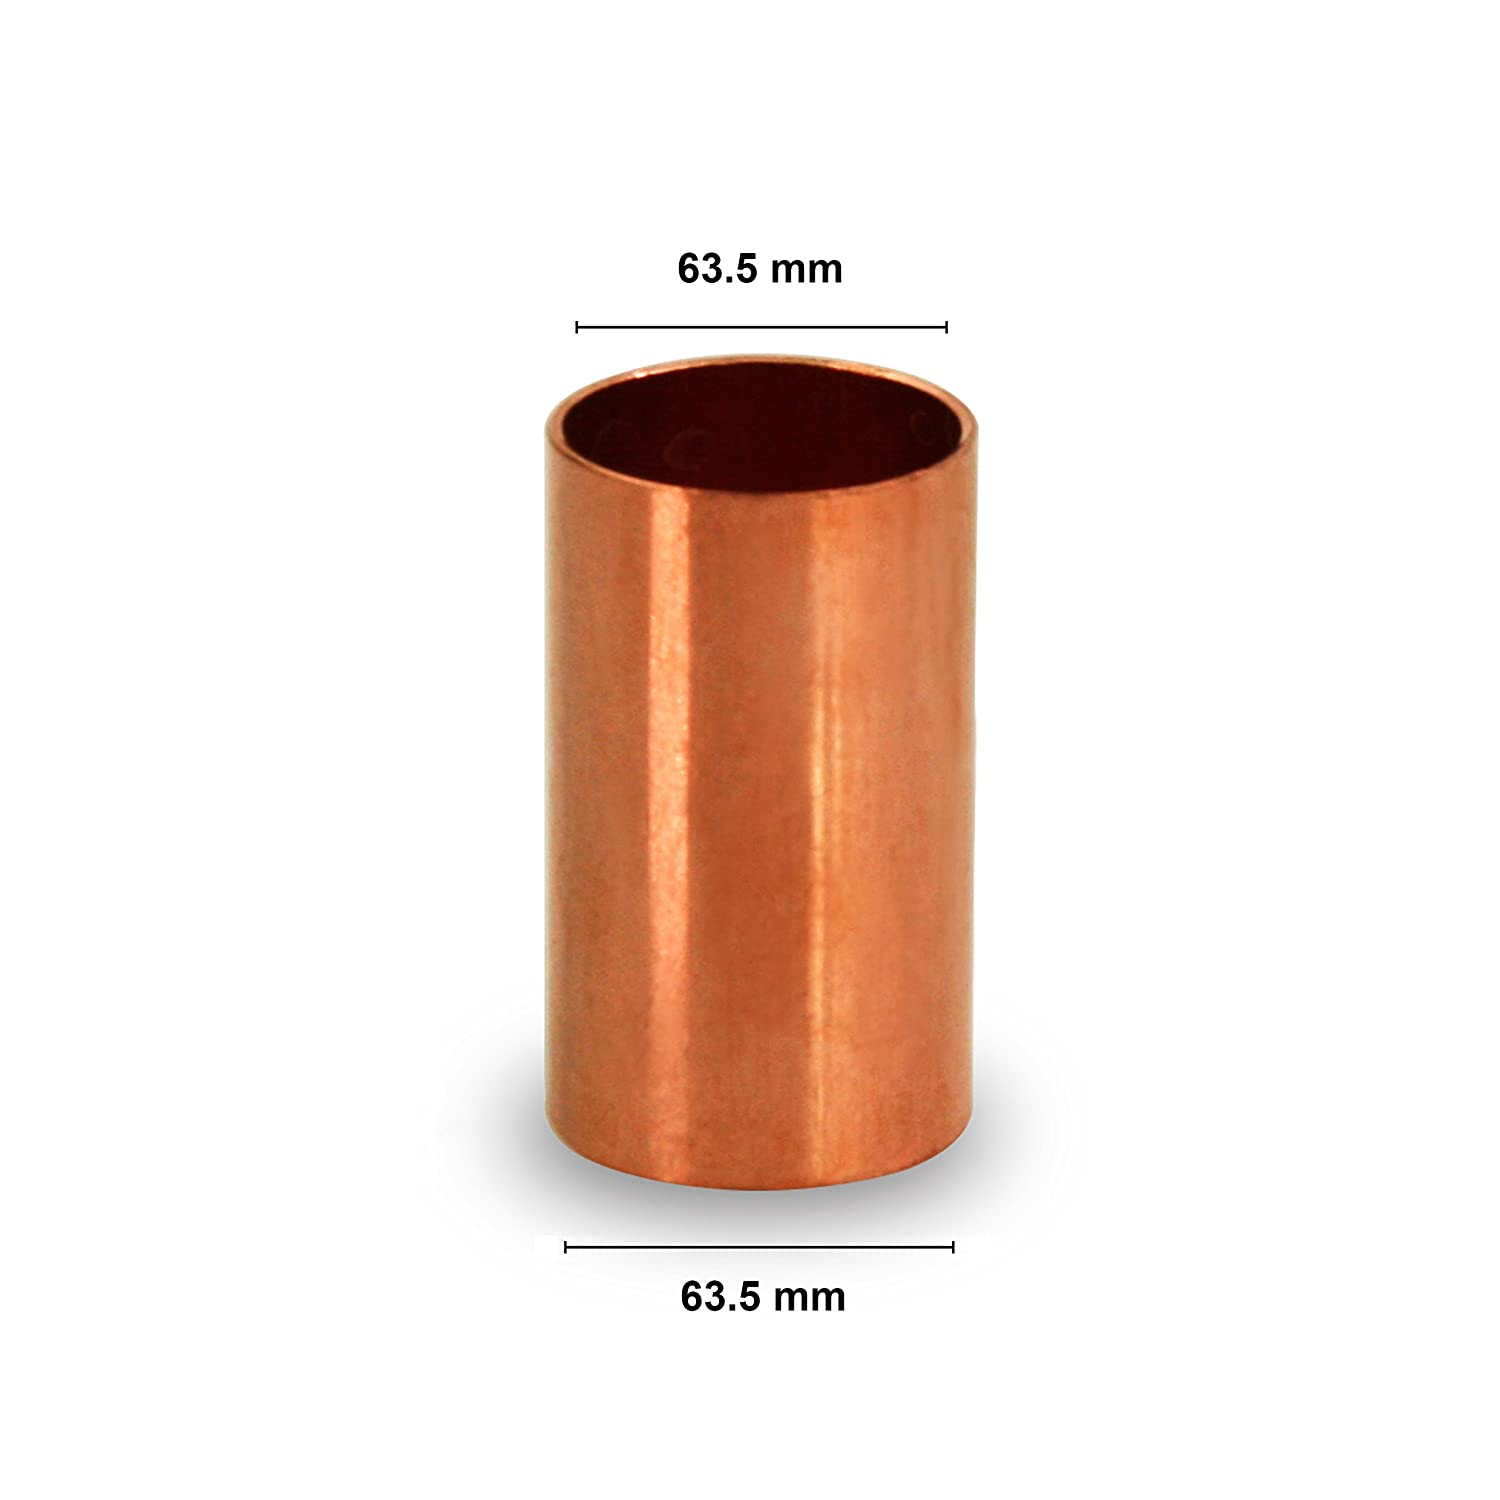 Everflow CCCL0100 1 Nominal Pipe Diameter Straight Copper Coupling With Sweat Sockets And Without Tube Stop Everflow Supplies